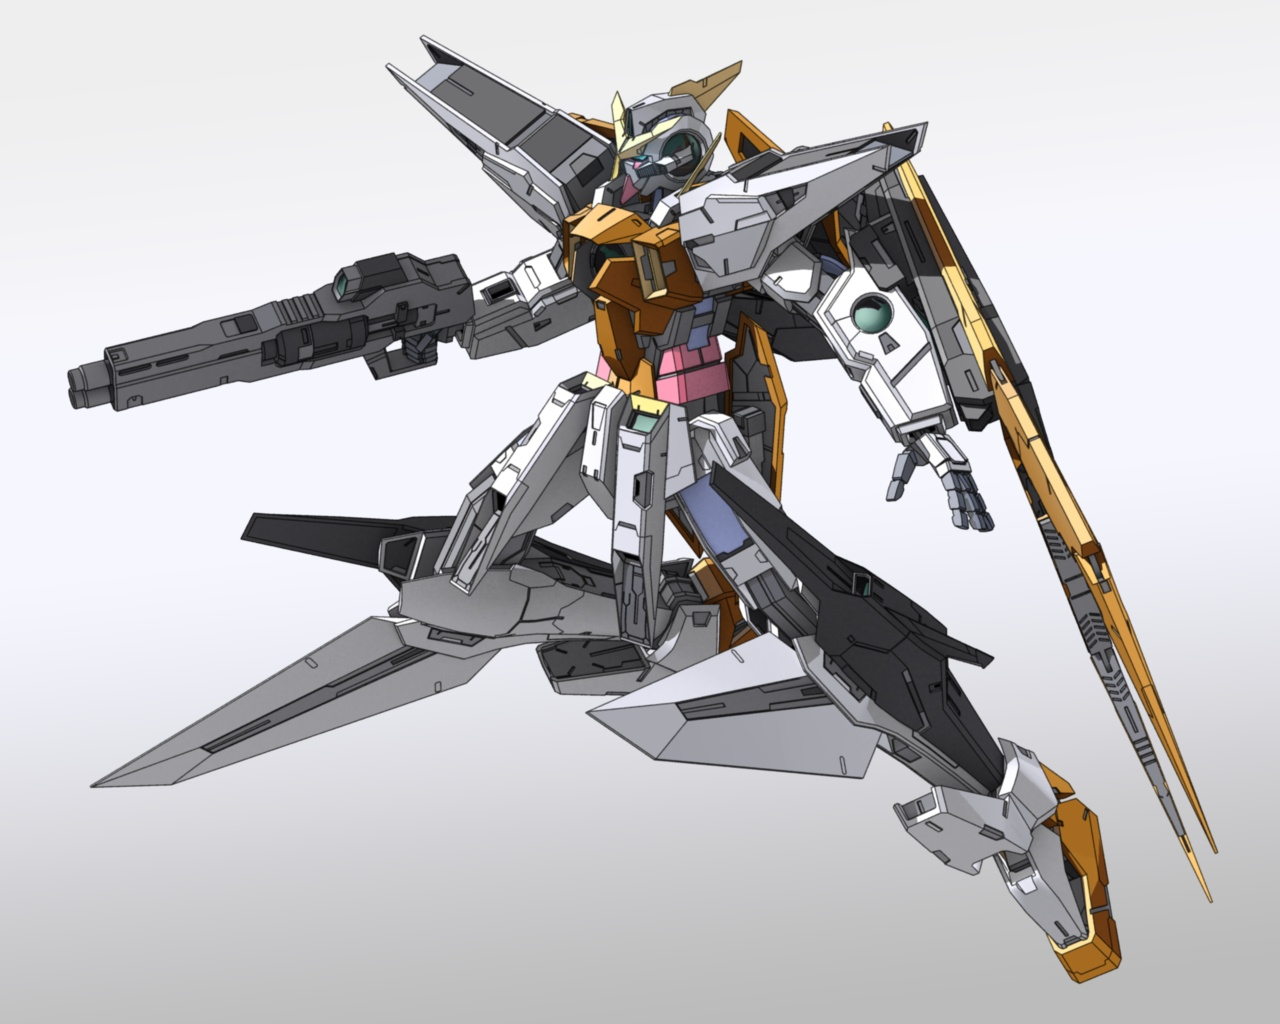 gundam Anime armored suit HD Wallpaper